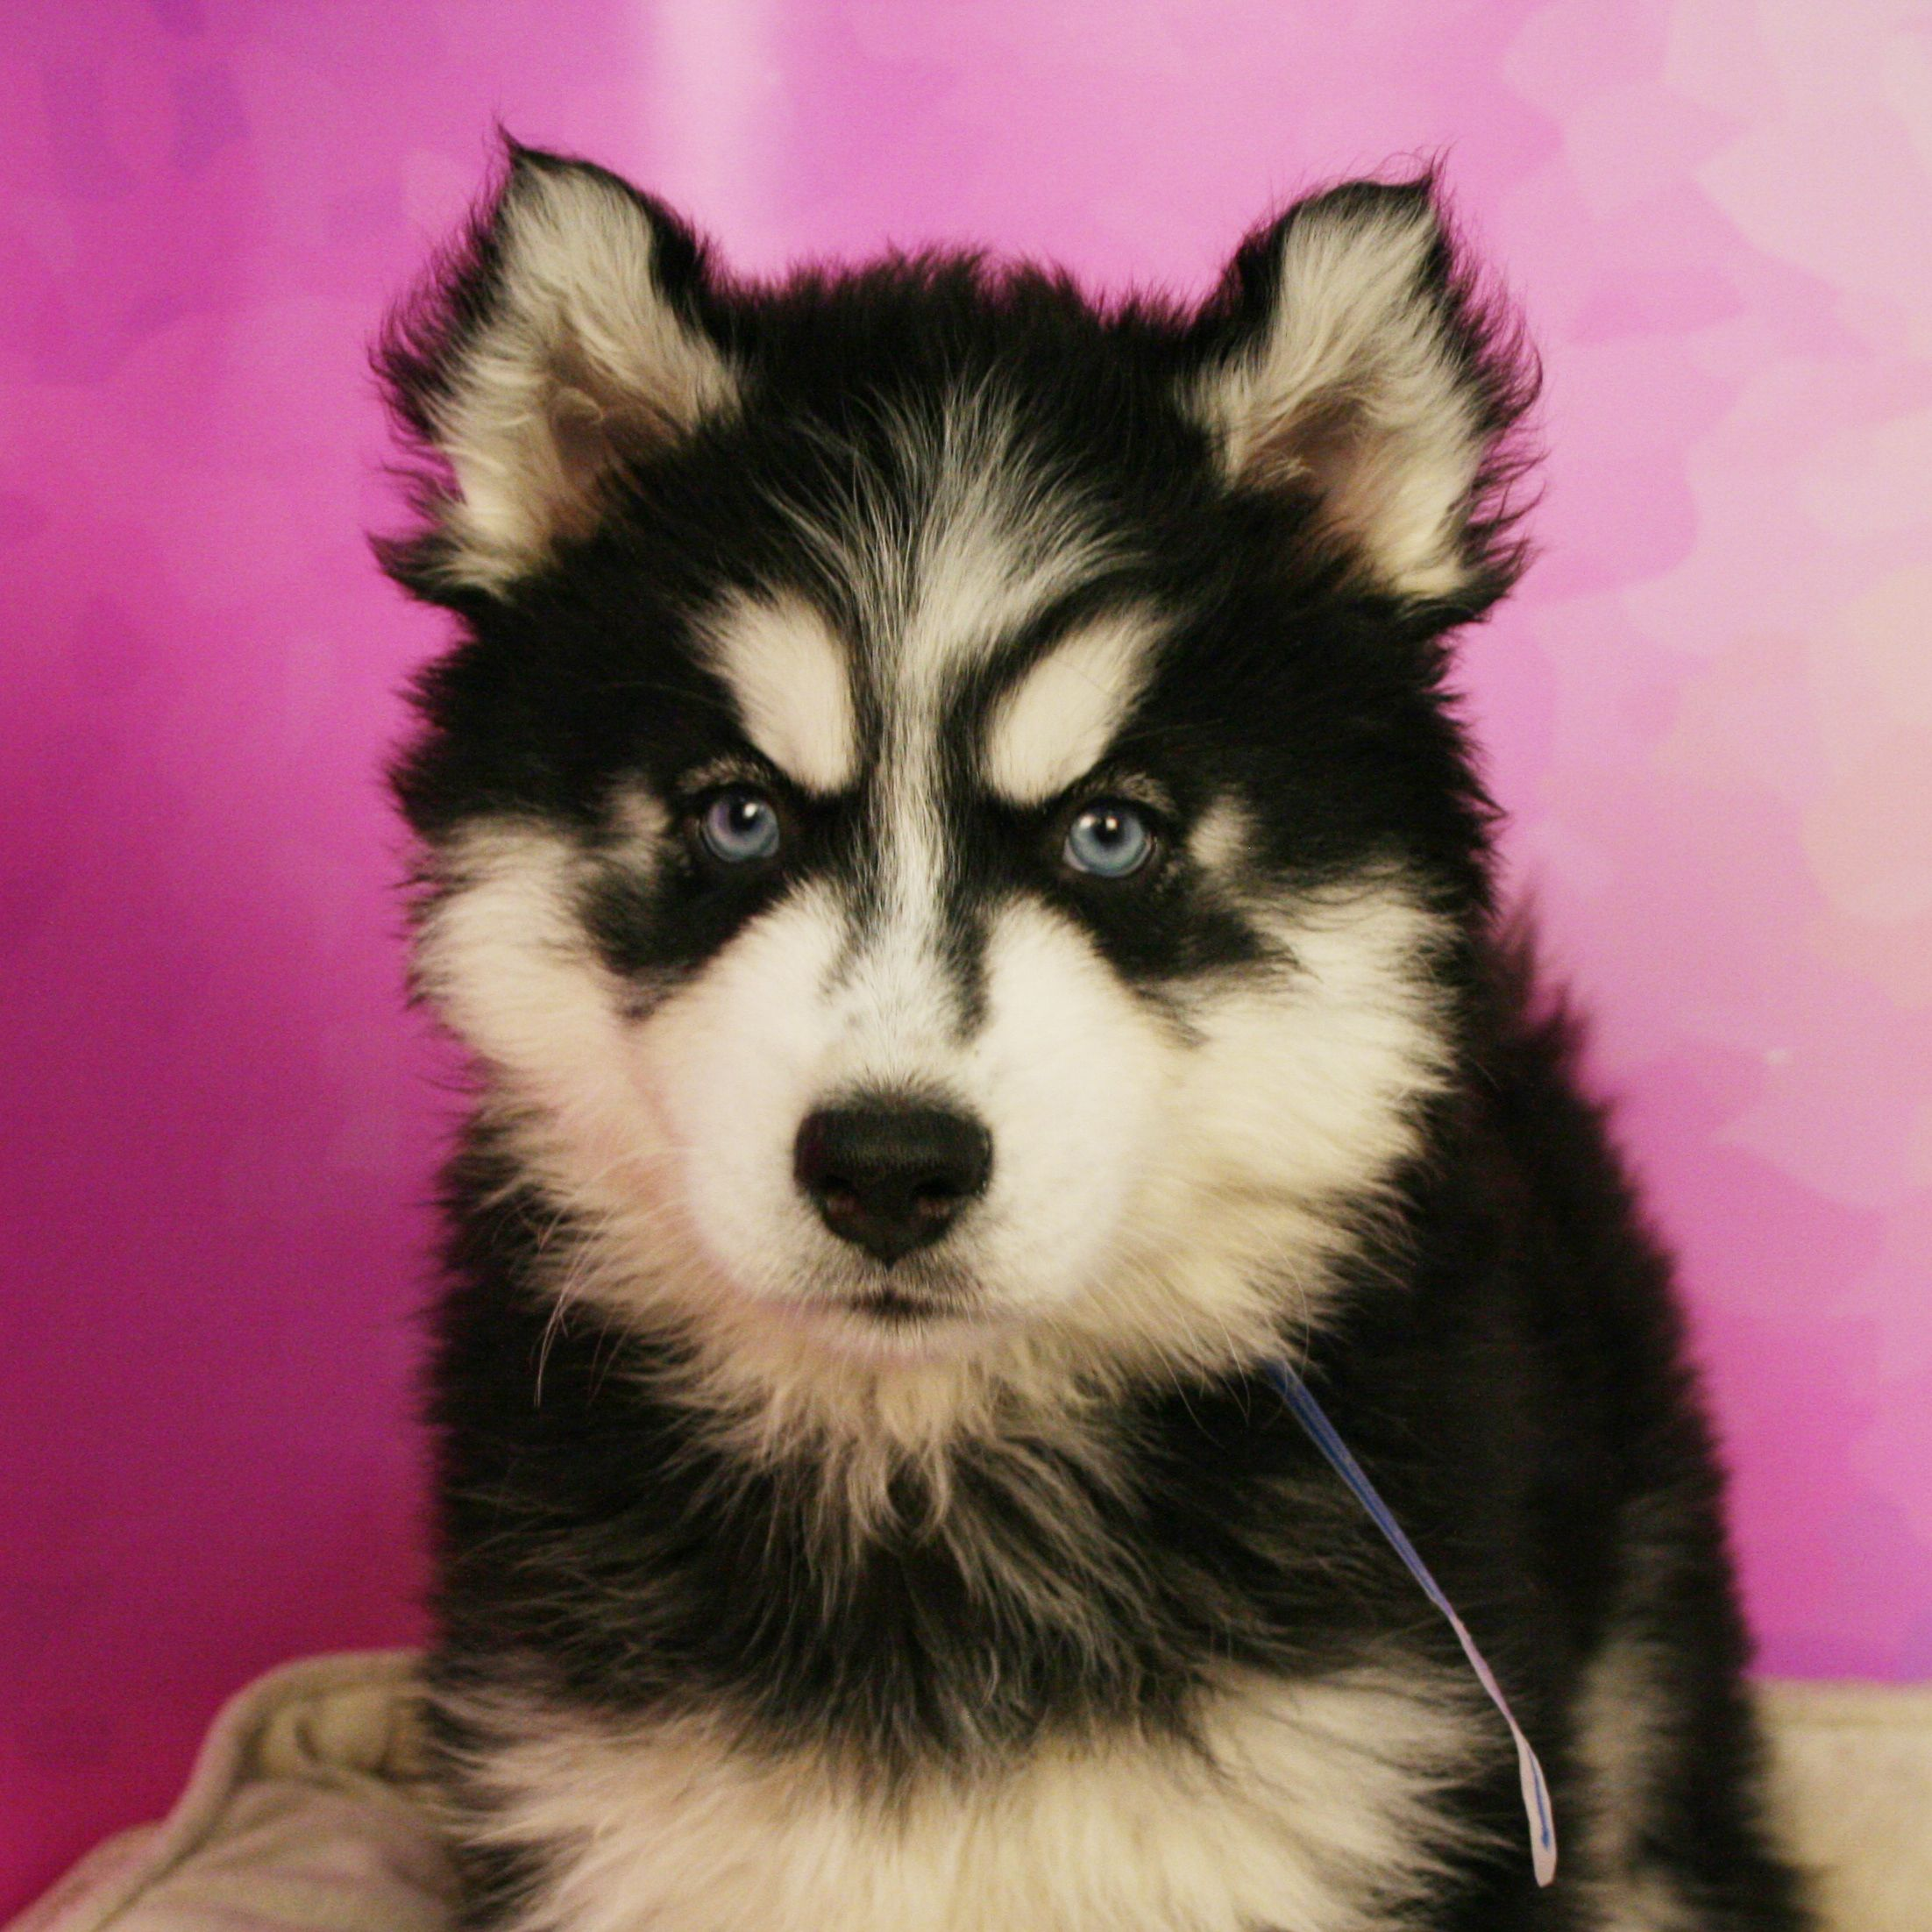 Fluffiness Extra Fluffy Animals Husky Puppies For Sale Puppies